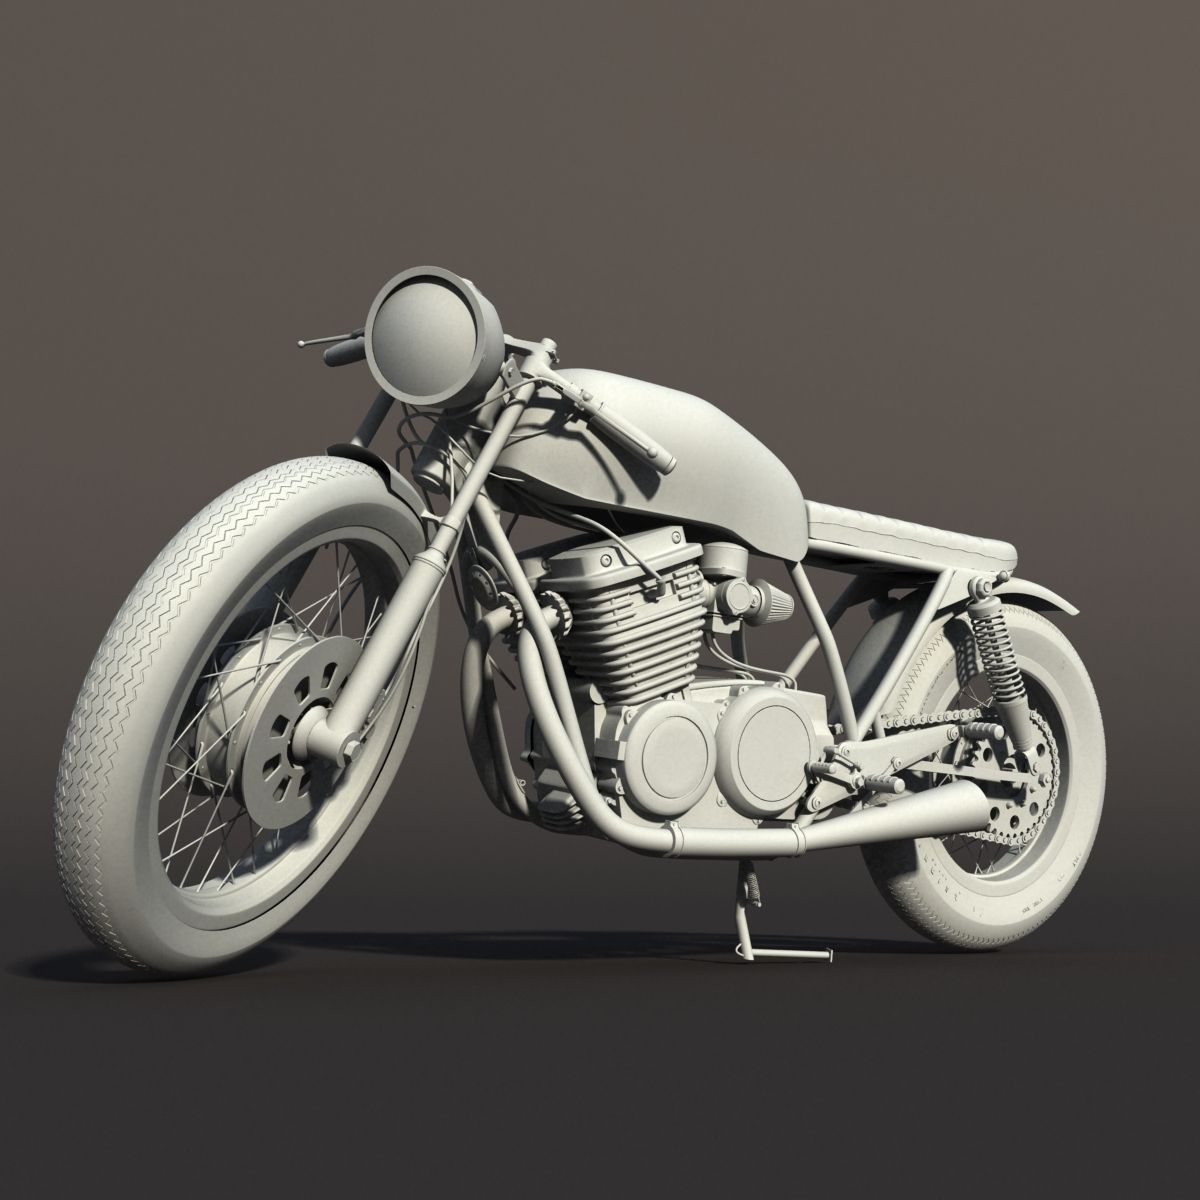 Wholesale Brown Cafe Racer further 1976 Honda Goldwing Wiring Diagram Cb750 Instructions Cb550 in addition 151671560346 further File HONDA CB750four 1975 01 likewise Cafe Racer Motorcycle. on honda cb750 chopper